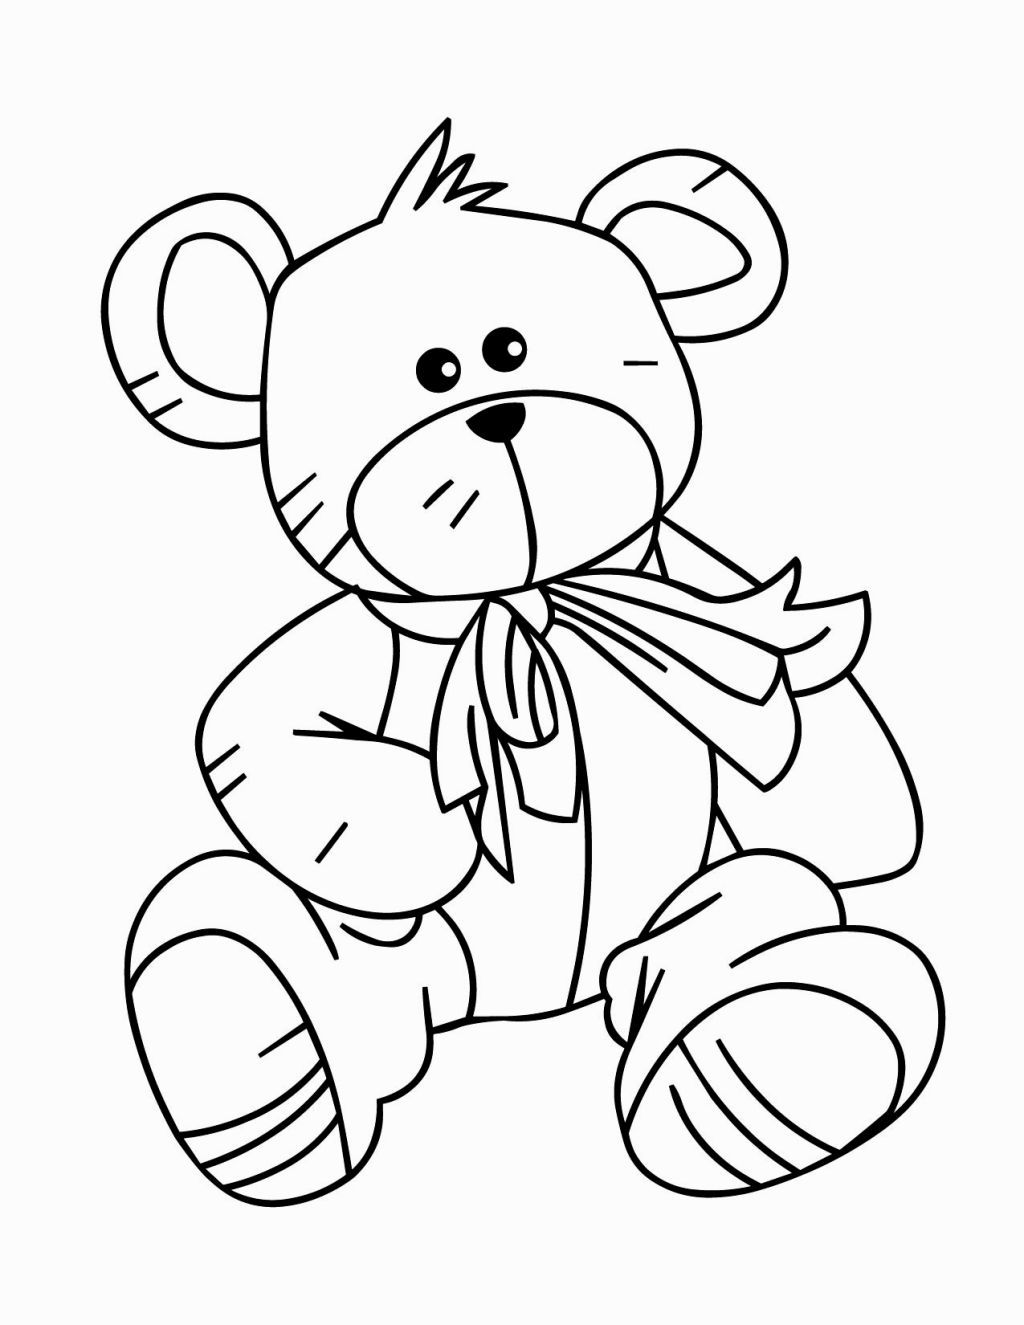 Get Well Coloring Sheets | Coloring Pages | Pinterest | Bulletin board